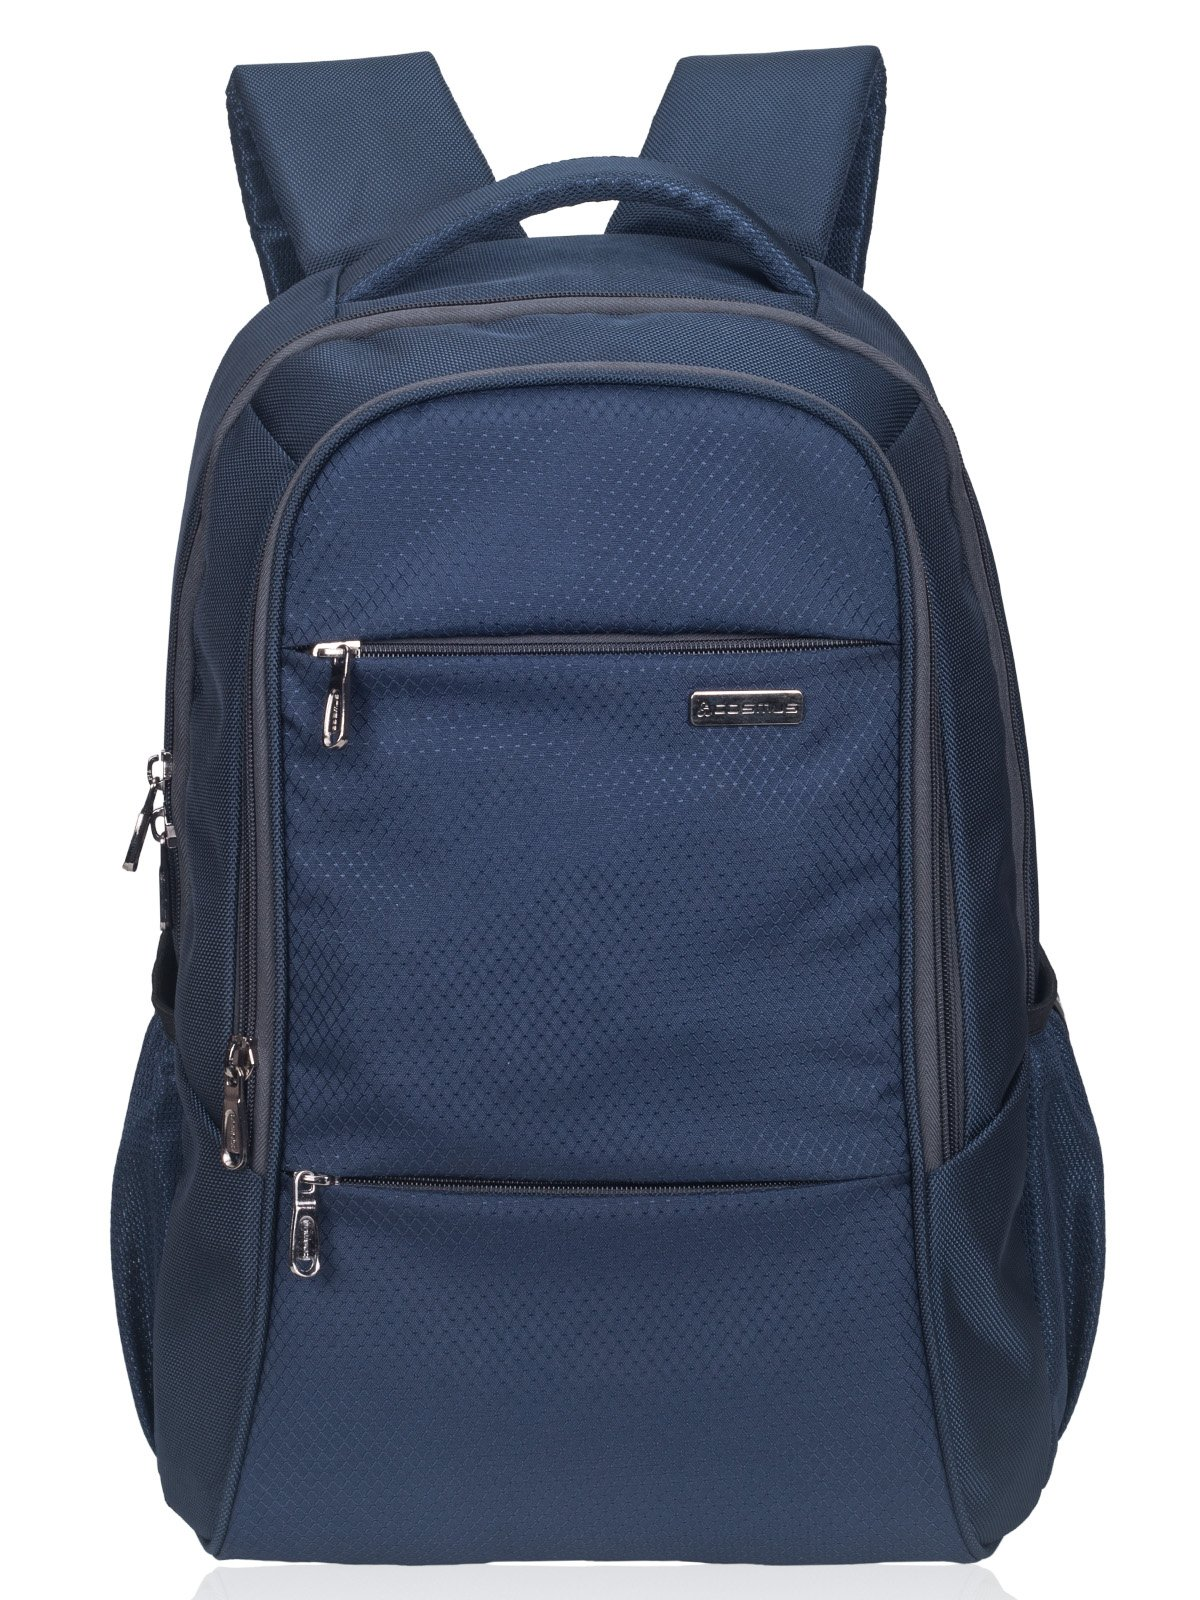 COSMUS Darwin Navy Blue Laptop Backpack for (15.6 inch) product image